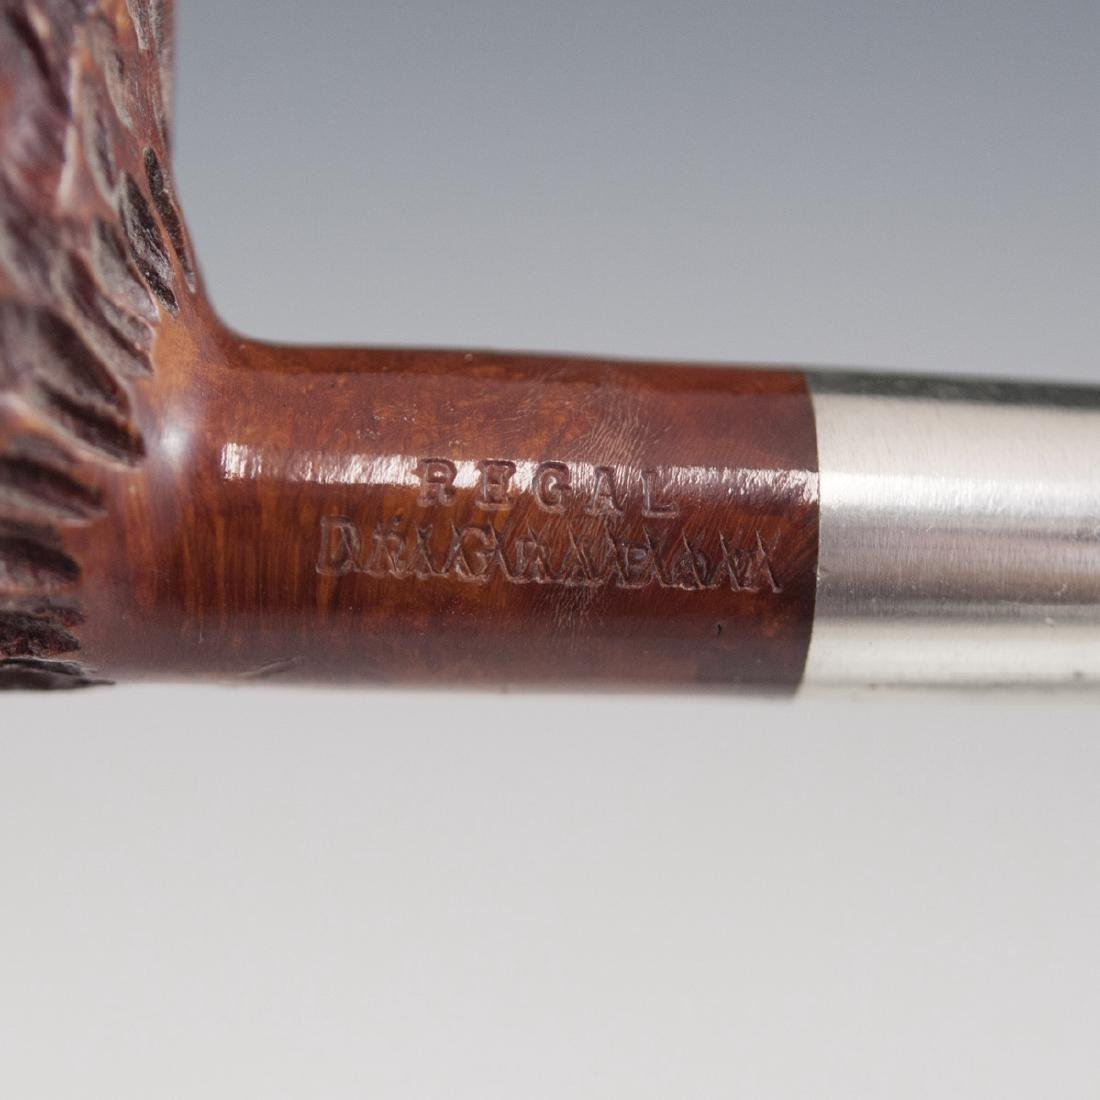 Dr. Grabow Tobacco Pipes - 2